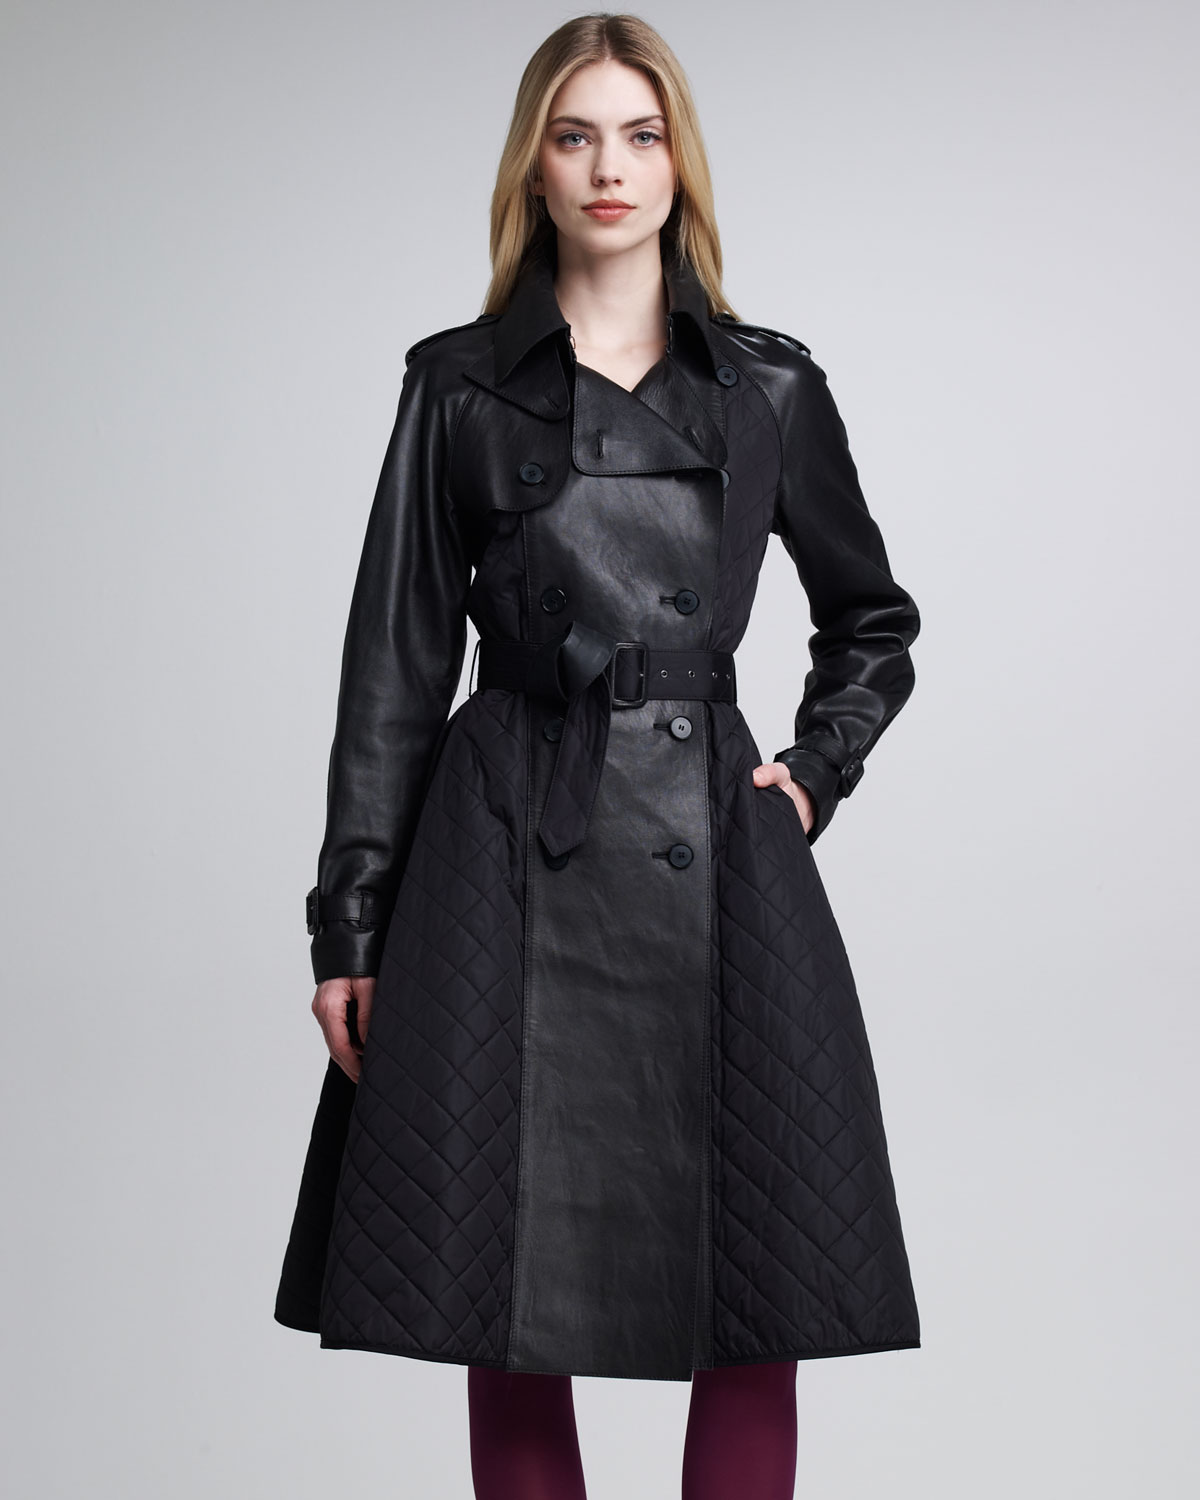 Jean paul gaultier Quilted Tech Leather Princess Coat in ...